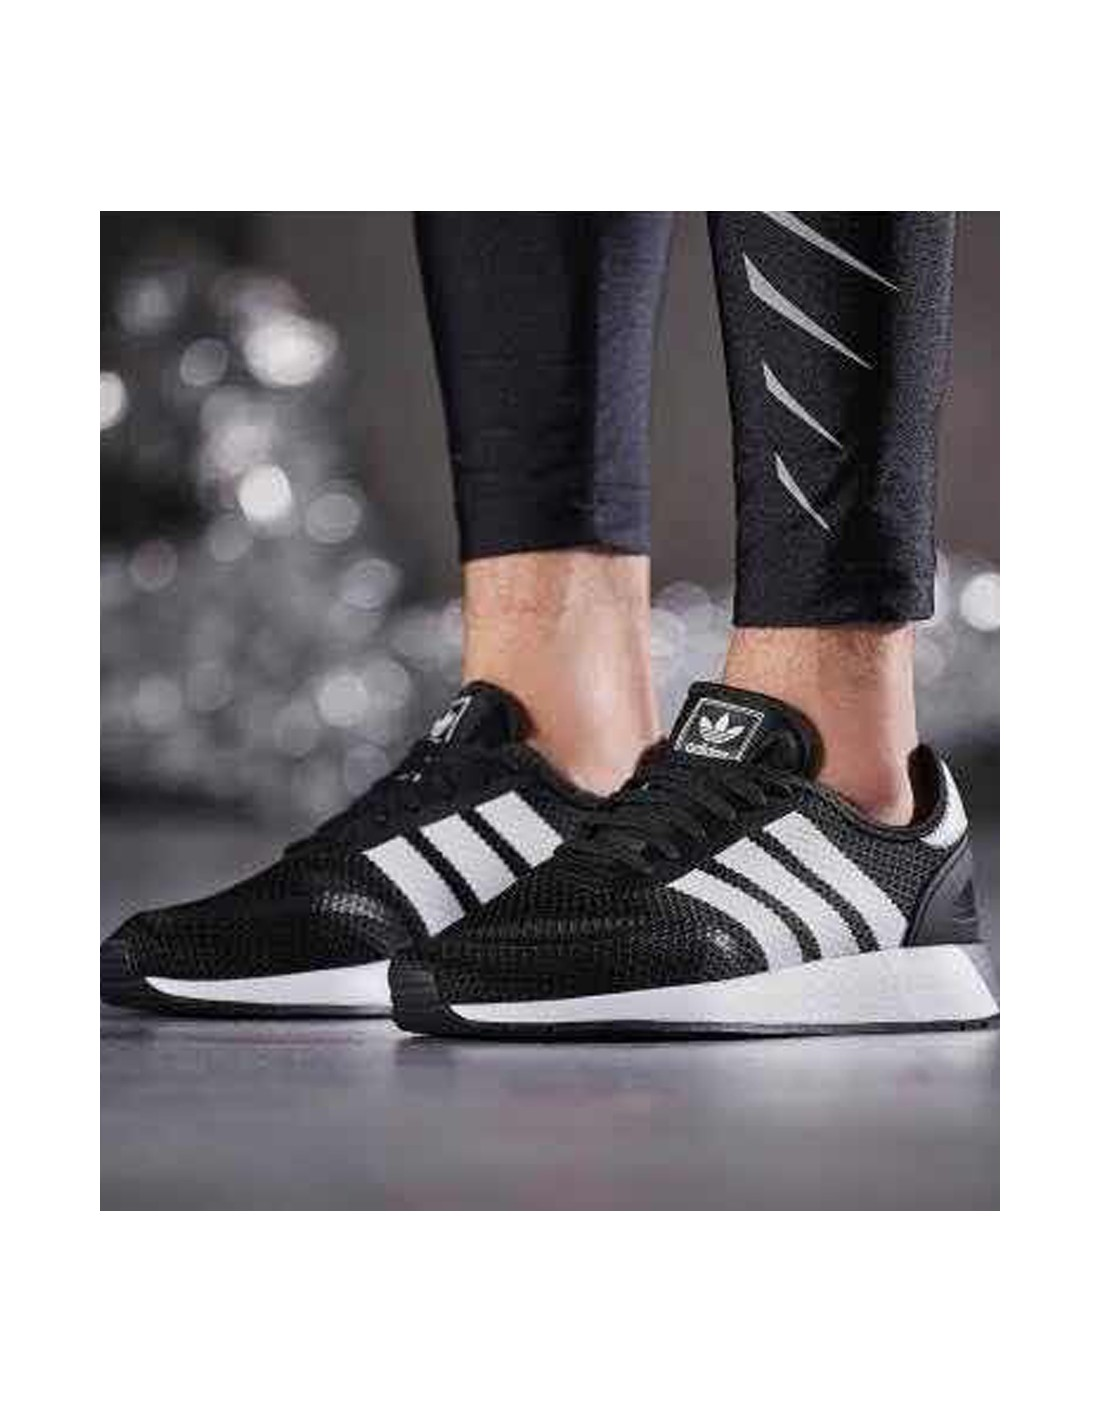 Adidas Originals N 5923 BlackWhite B37957 |urbanfashion.gr